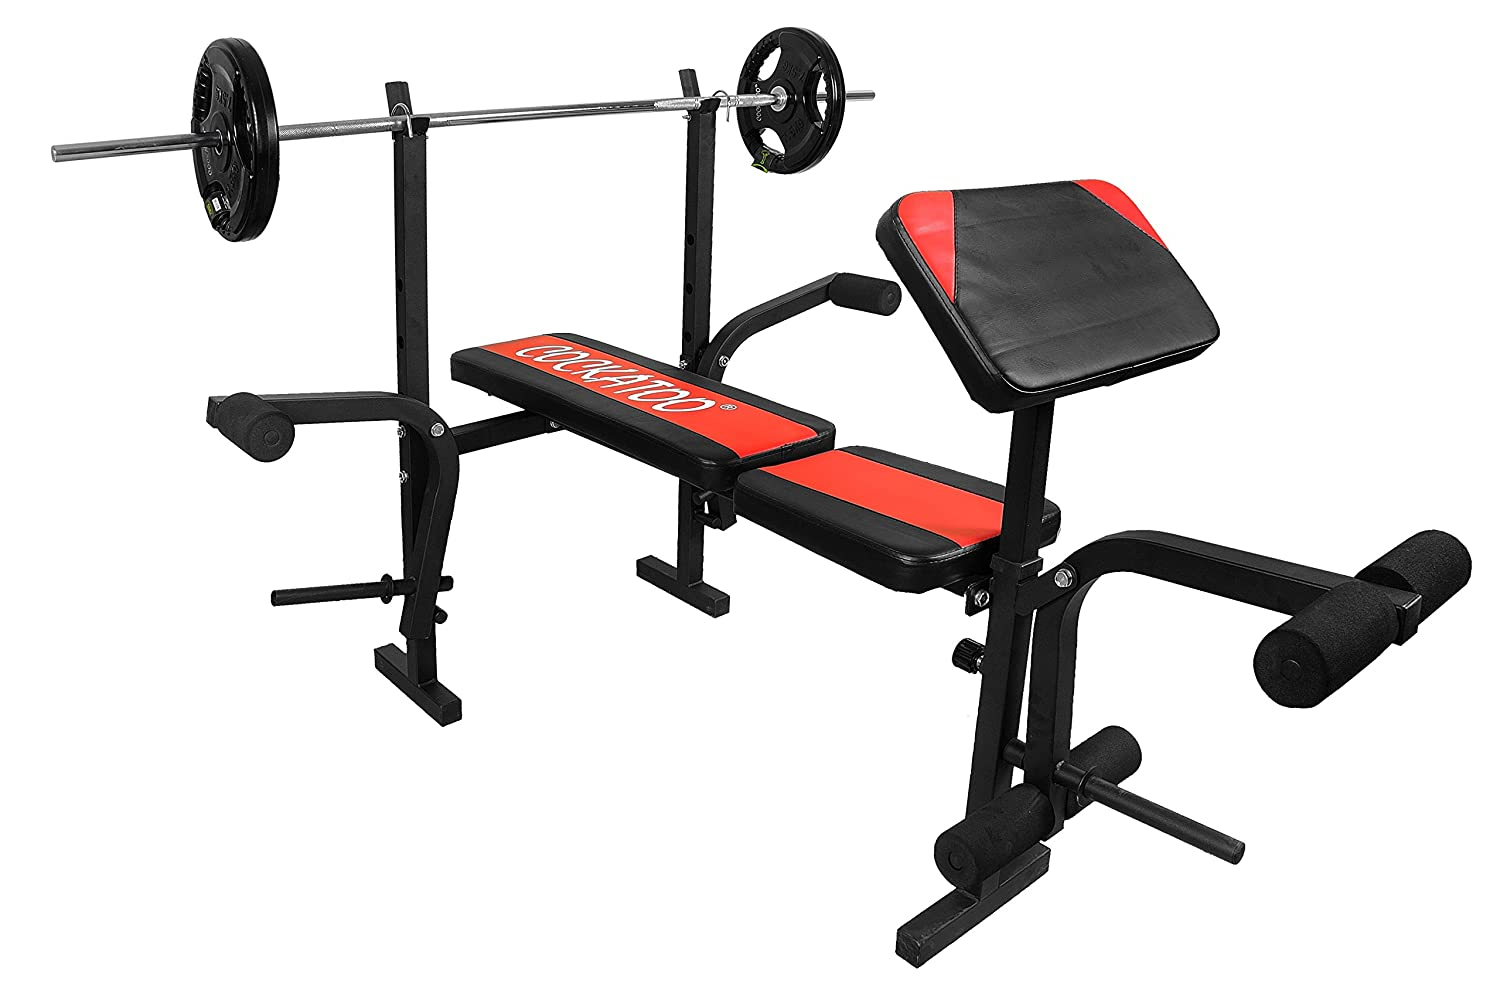 noimagefound benches weight dick olympic sporting champ goods p body s is bench